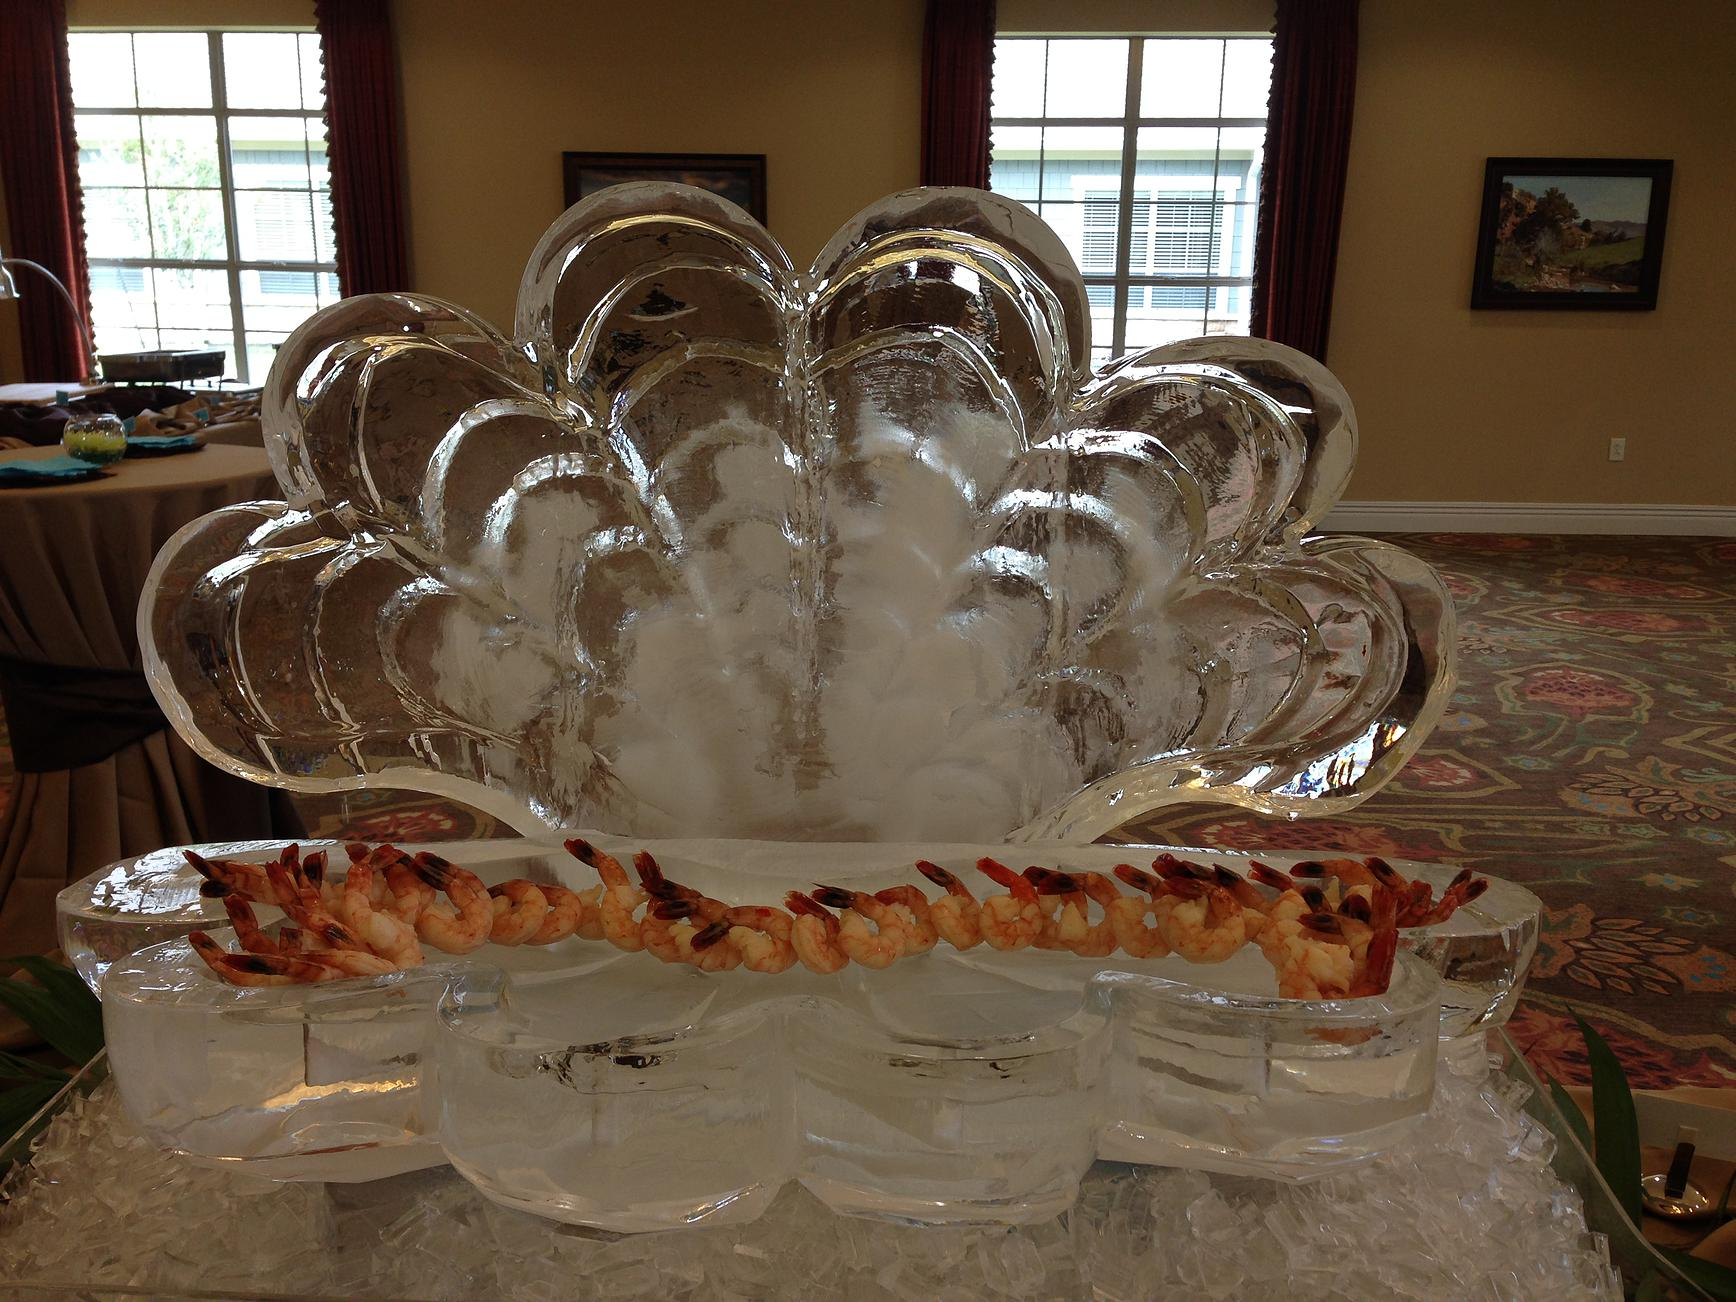 Clam shell ice sculpture